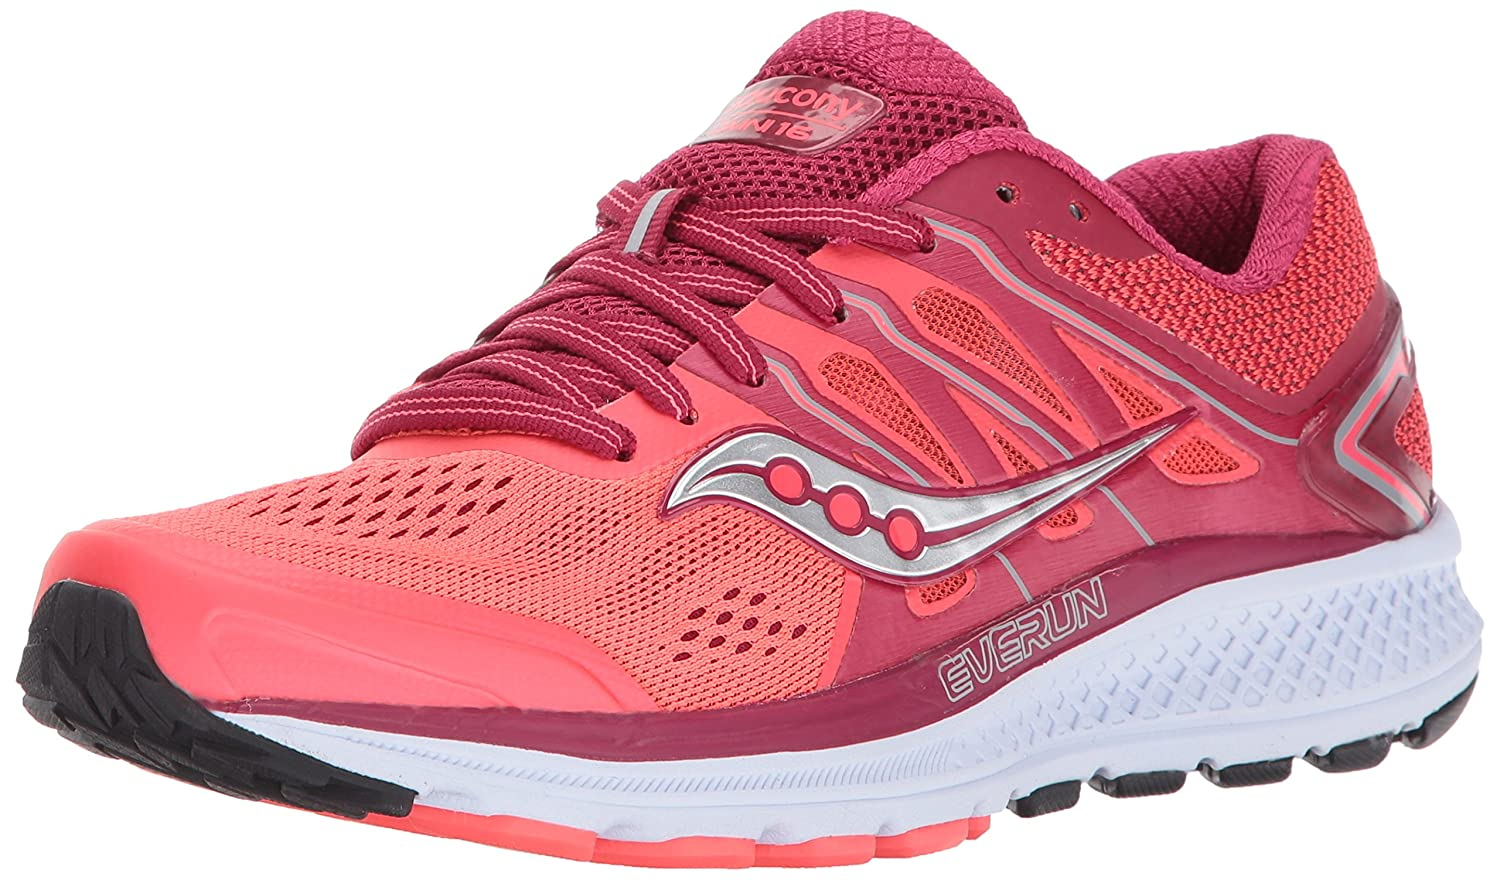 Berry Coral 38 EU Saucony Wohommes Omni 16 FonctionneHommest chaussures